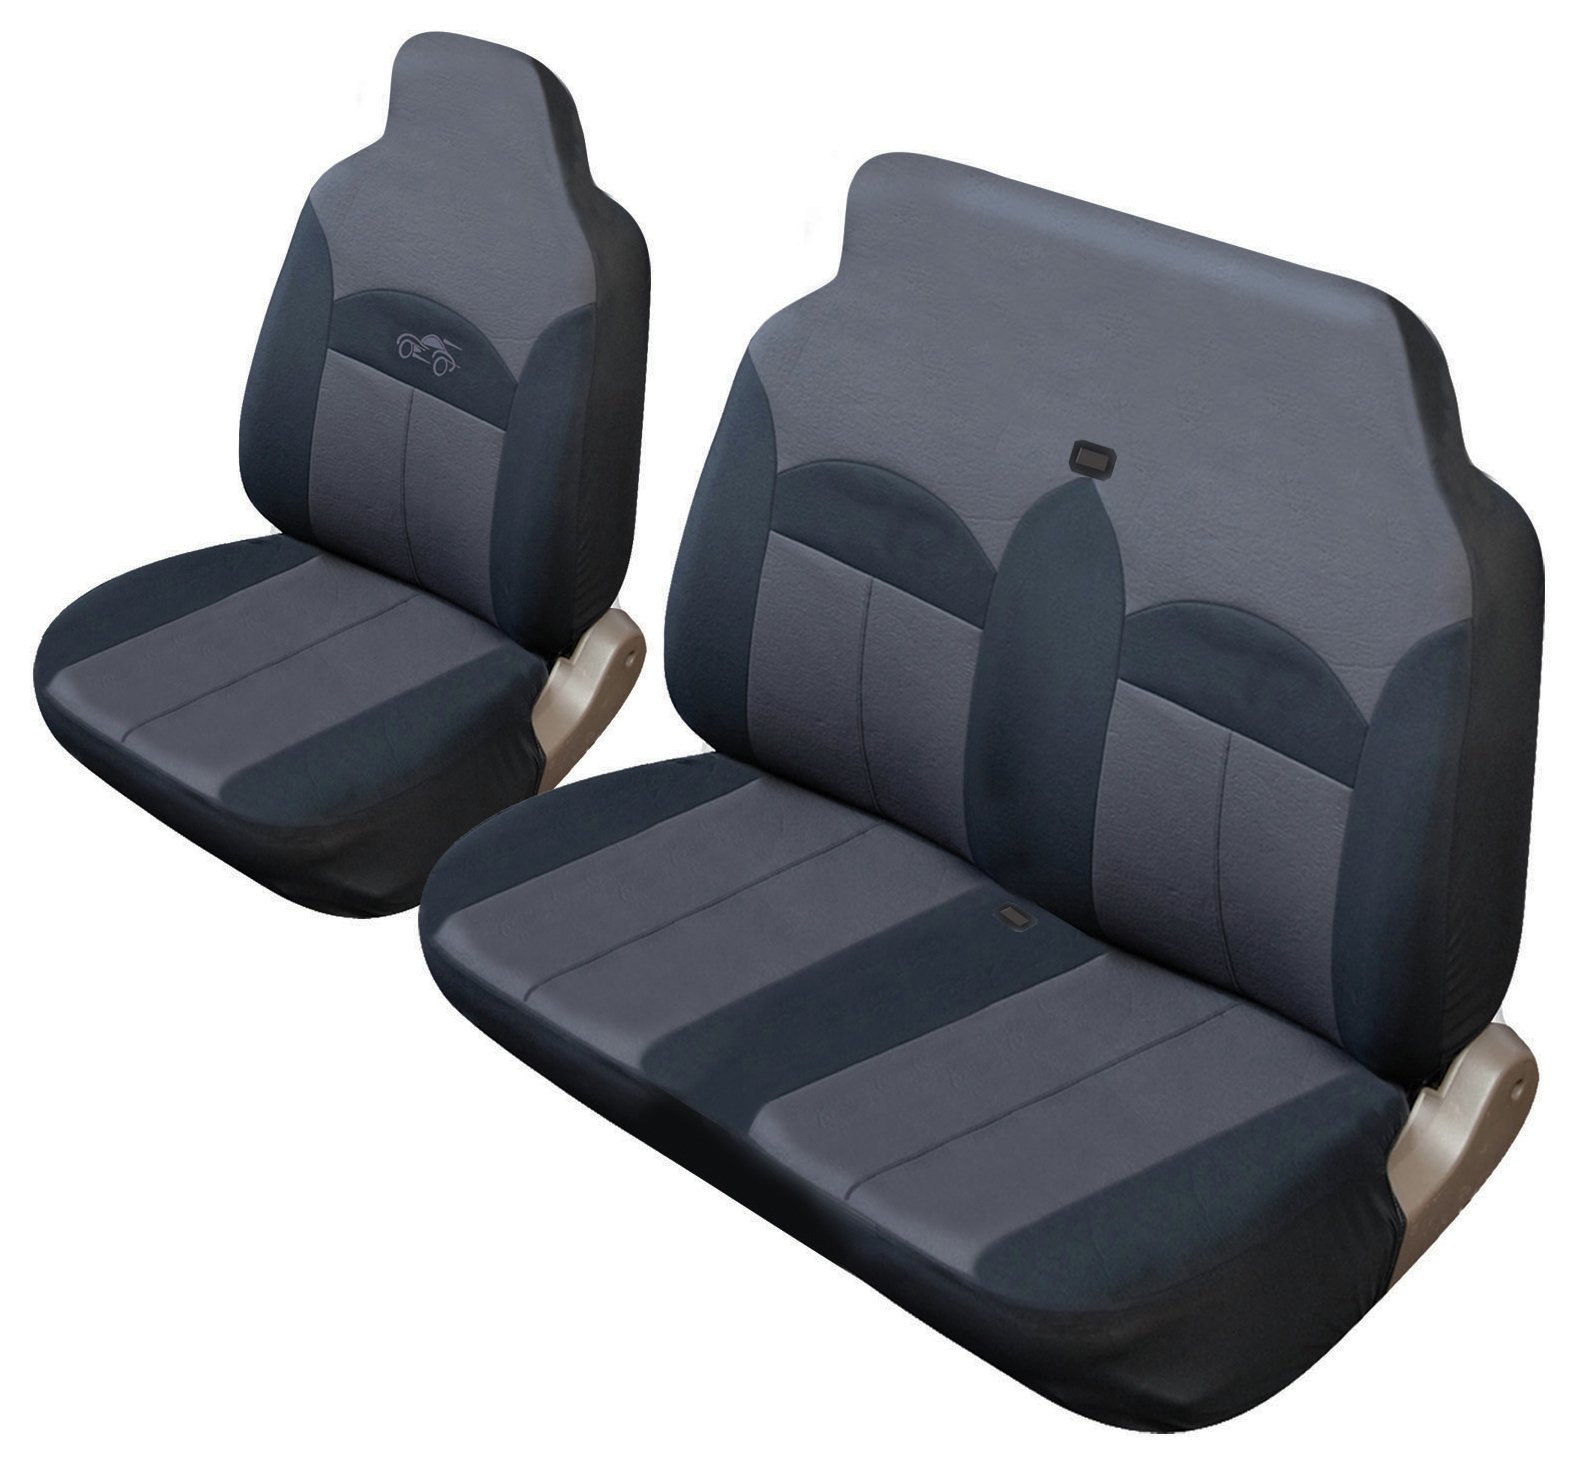 Image of Cosmos - Celsius Commercial Seat Cover Set - Black and Grey